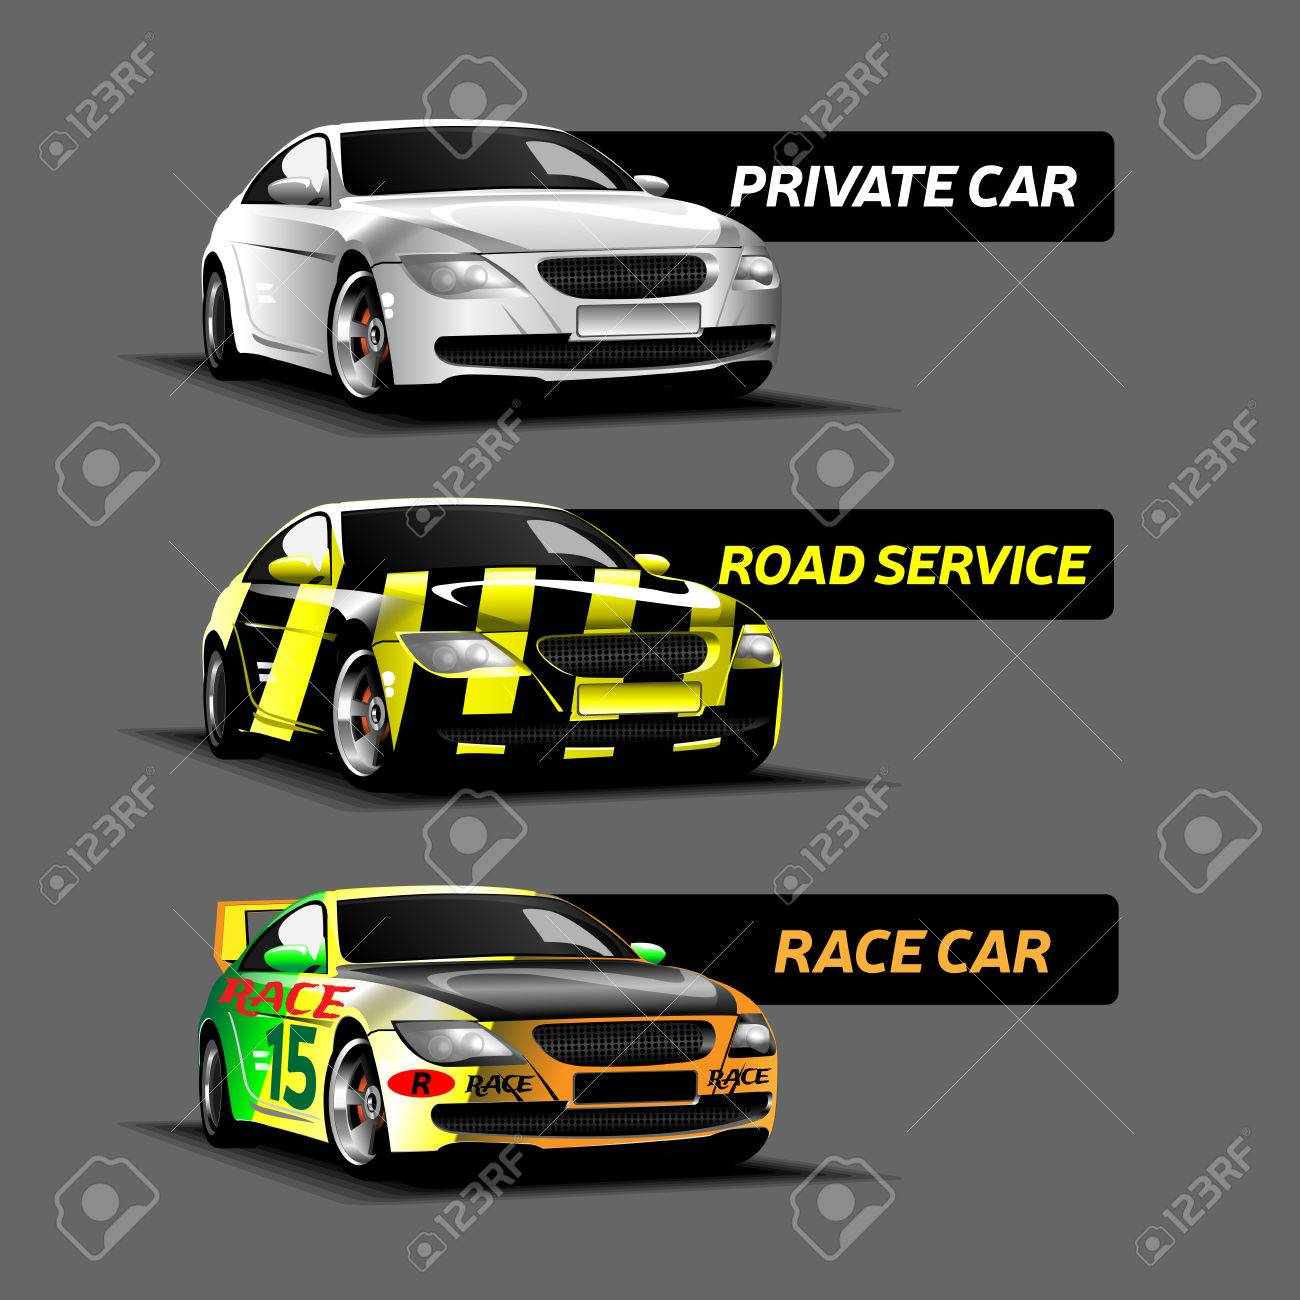 Three Types Of Cars White Private Car Green Race Car Number